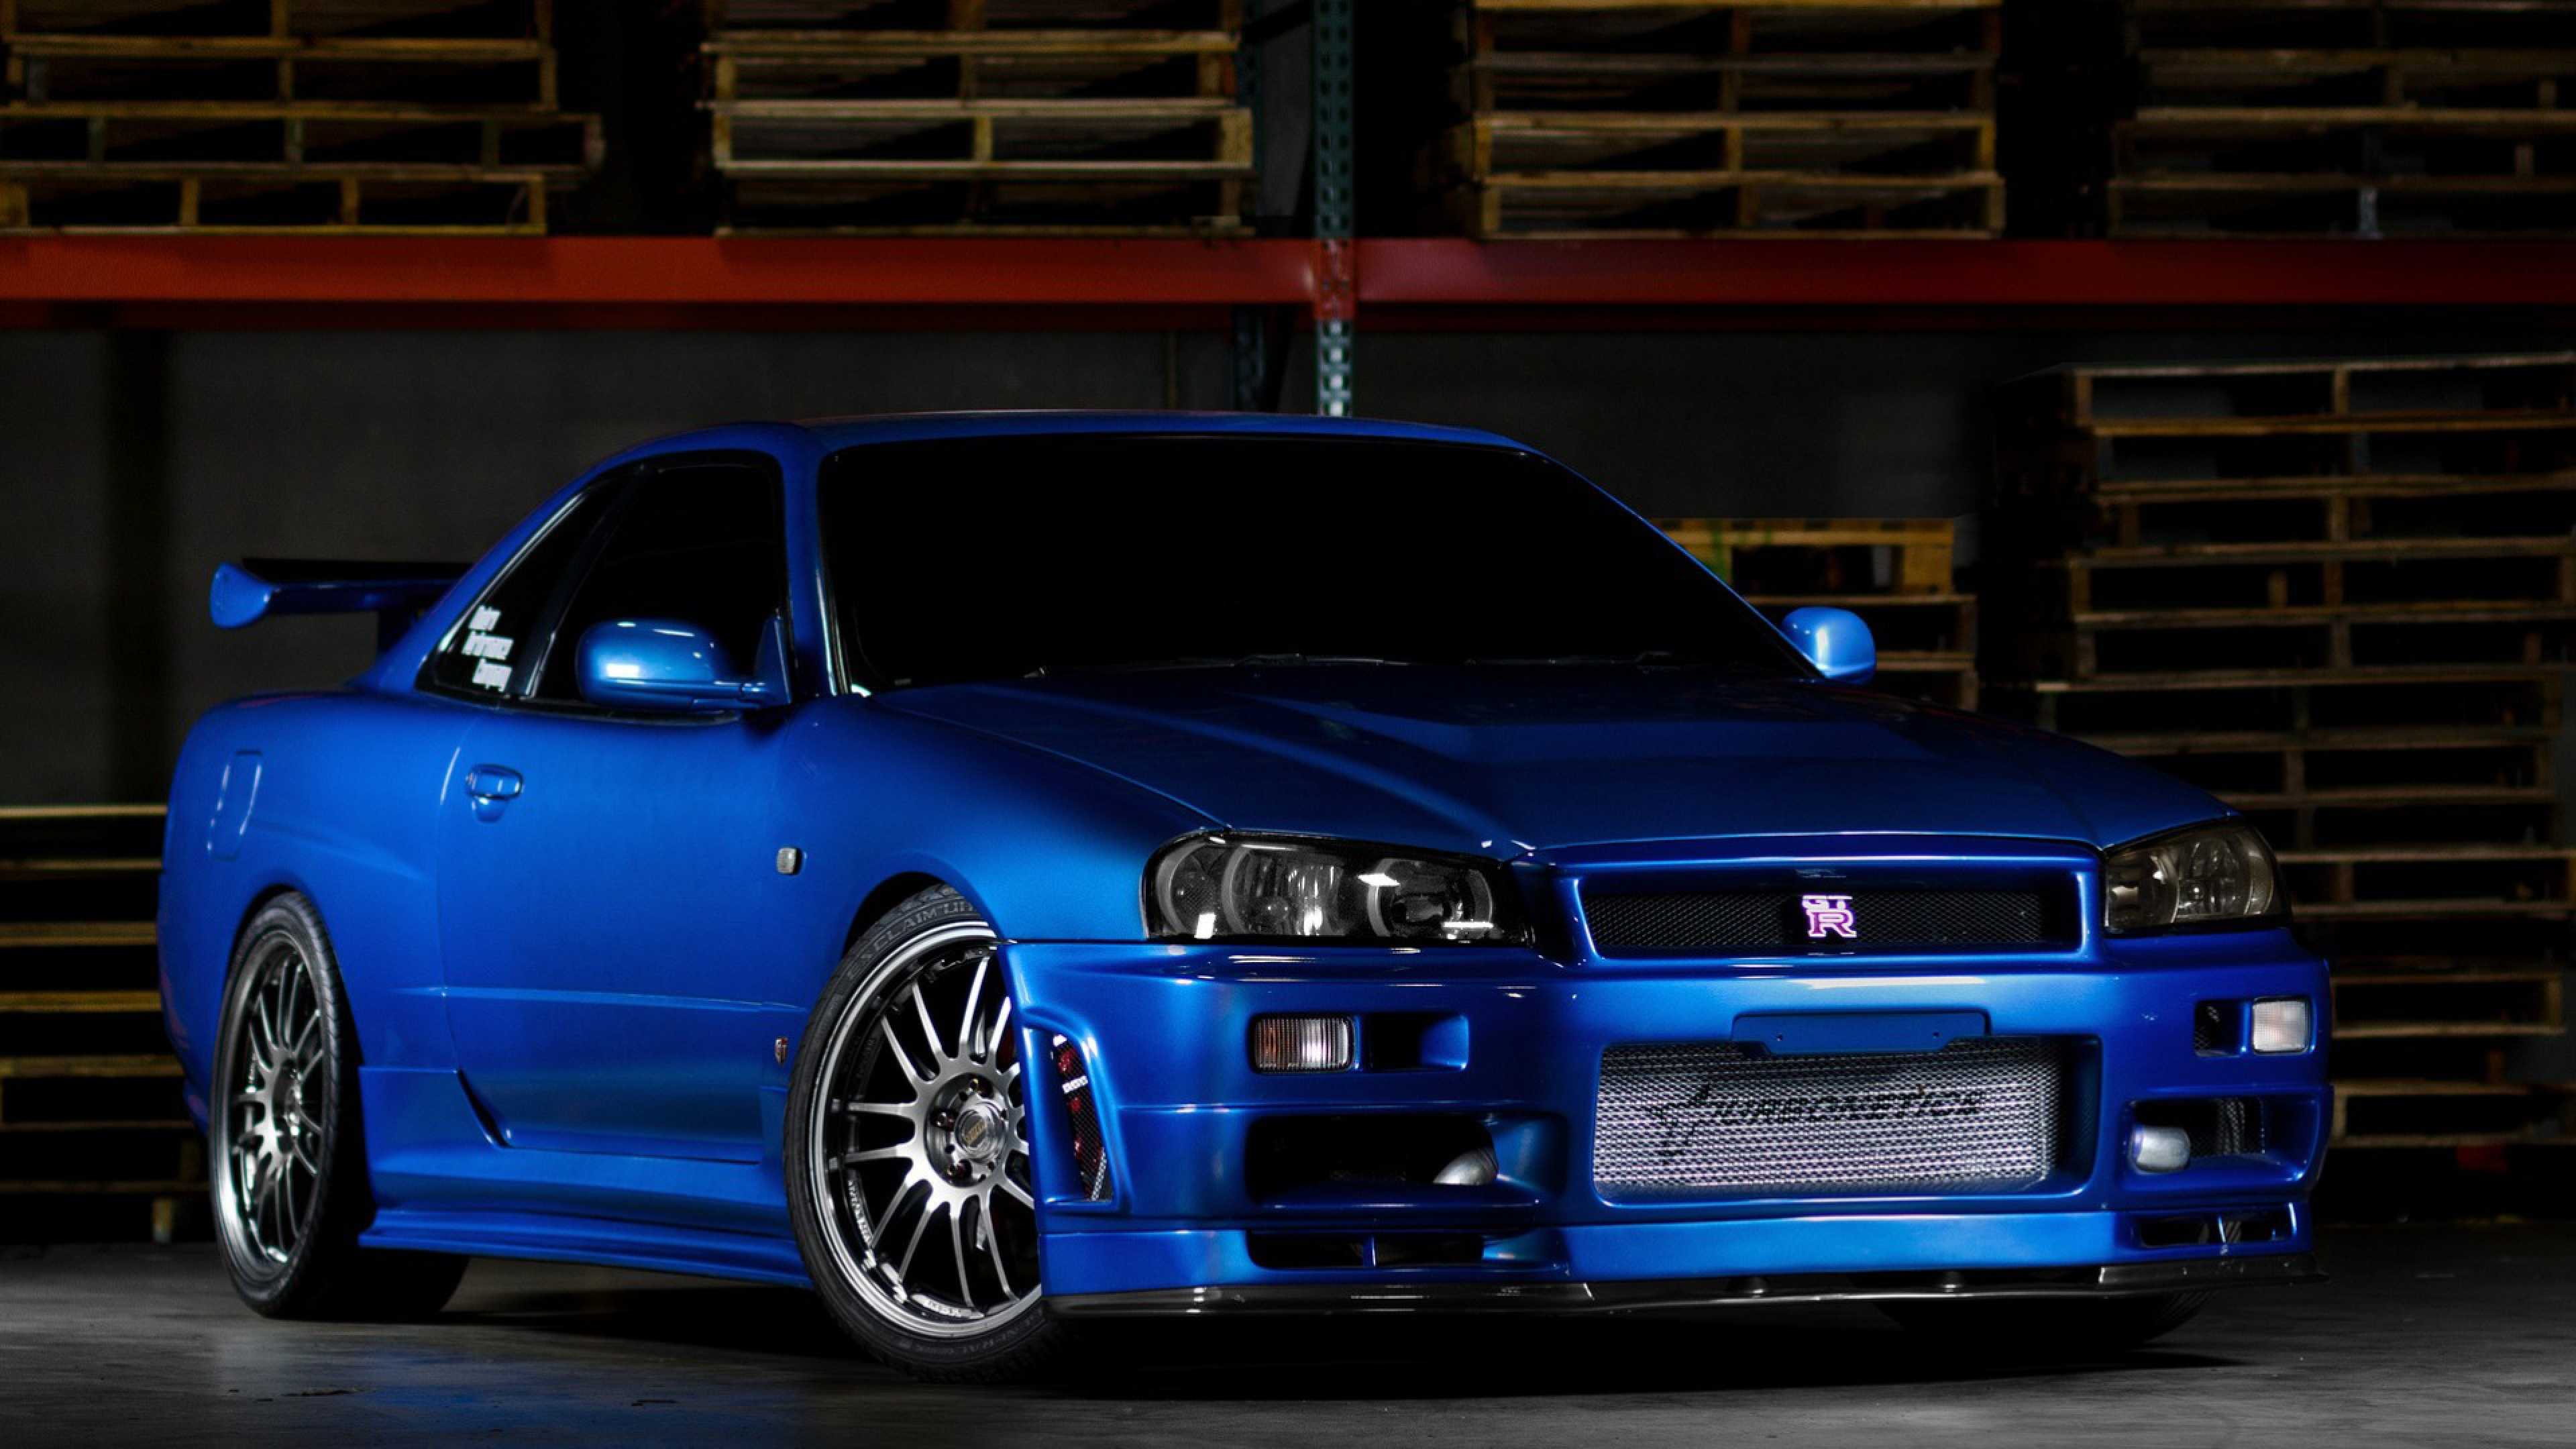 Nissan skyline gt r wallpapers images photos pictures backgrounds - Nissan skyline background ...